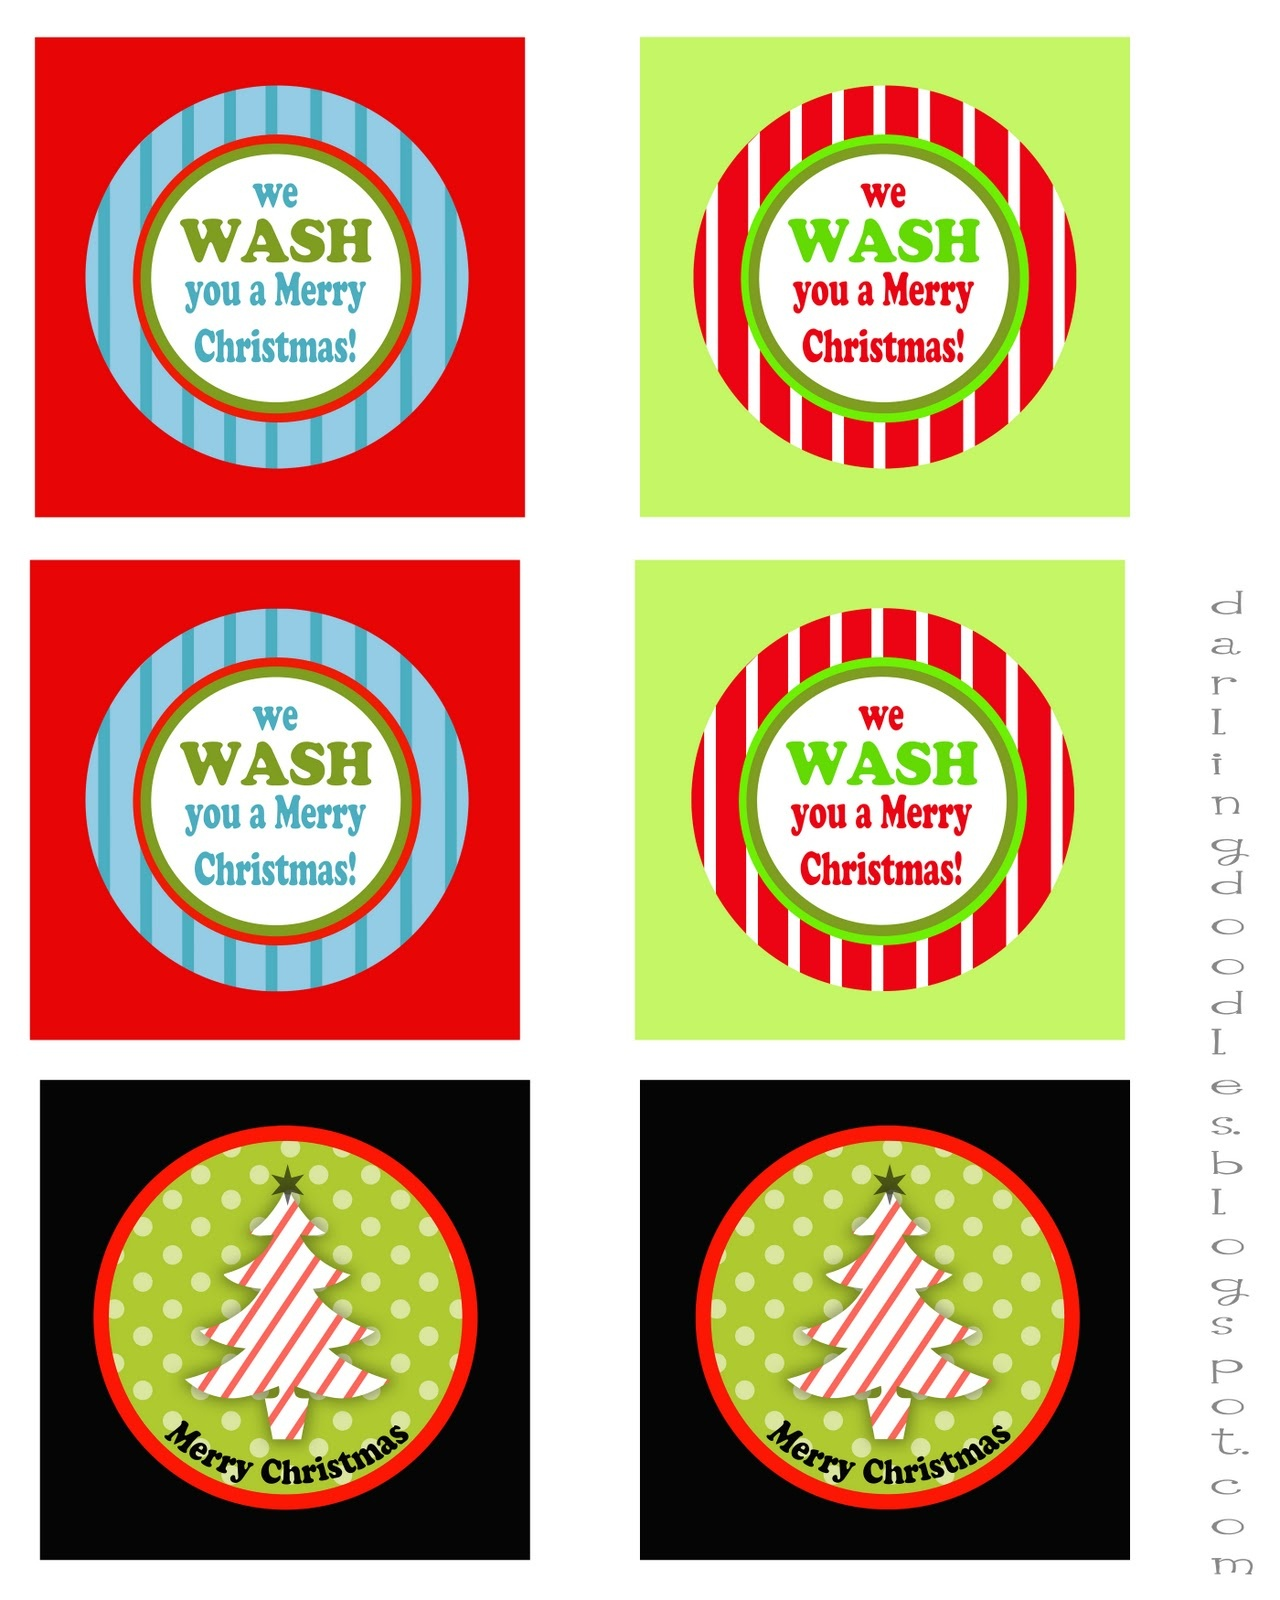 12 Days Of Gift-Mas, Gift #1 - Darling Doodles - We Wash You A Merry Christmas Free Printable